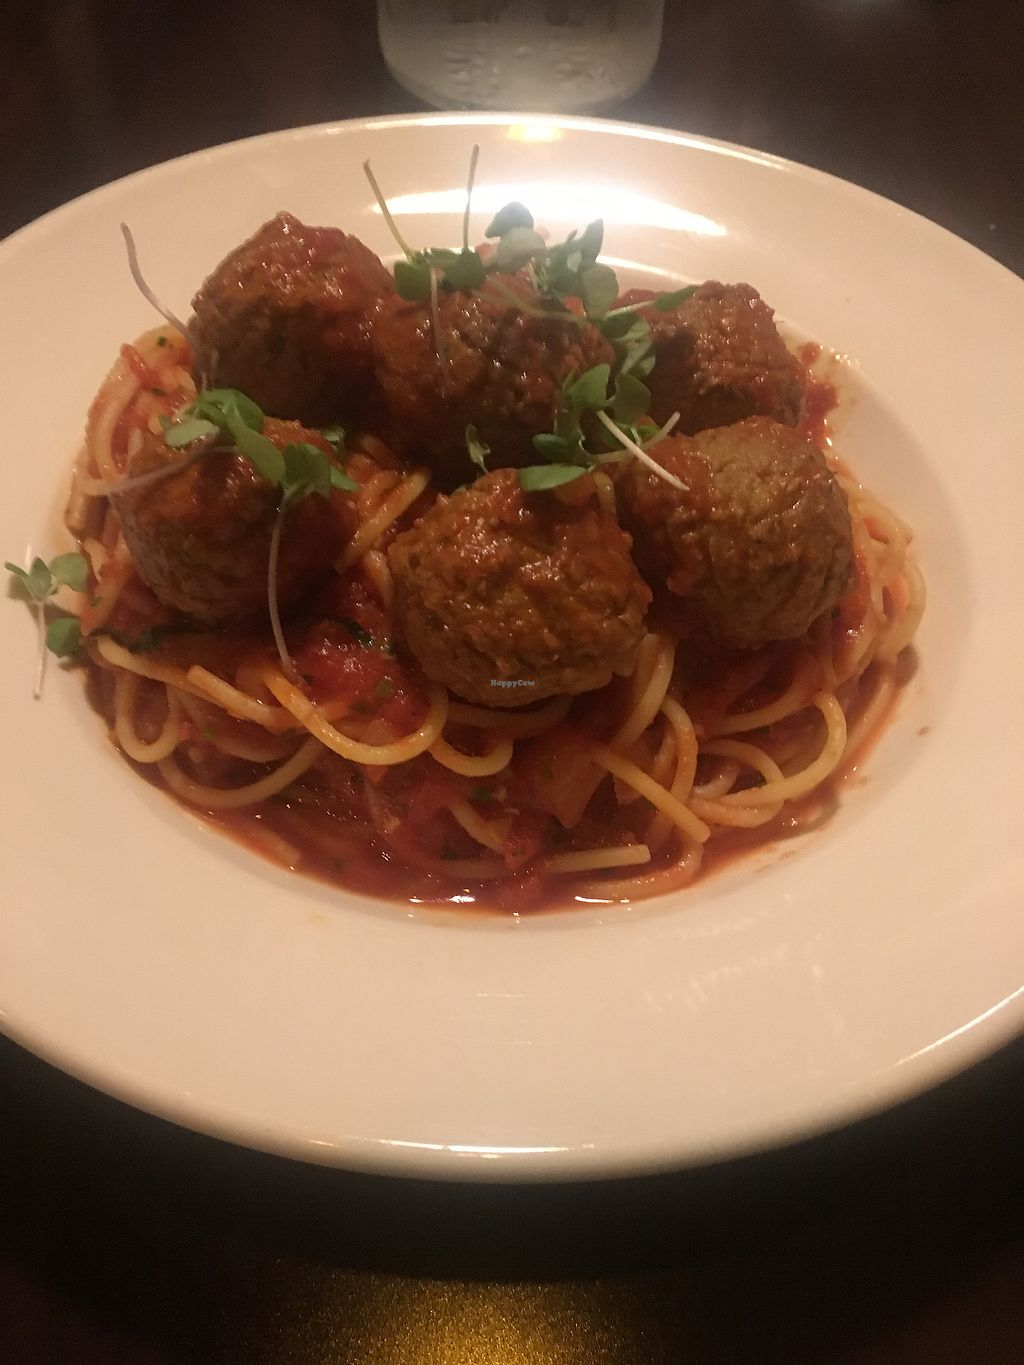 """Photo of Tony and Nick's Italian Kitchen  by <a href=""""/members/profile/thebin41"""">thebin41</a> <br/>Vegan Spaghetti and Meatballs <br/> March 10, 2018  - <a href='/contact/abuse/image/89387/368659'>Report</a>"""